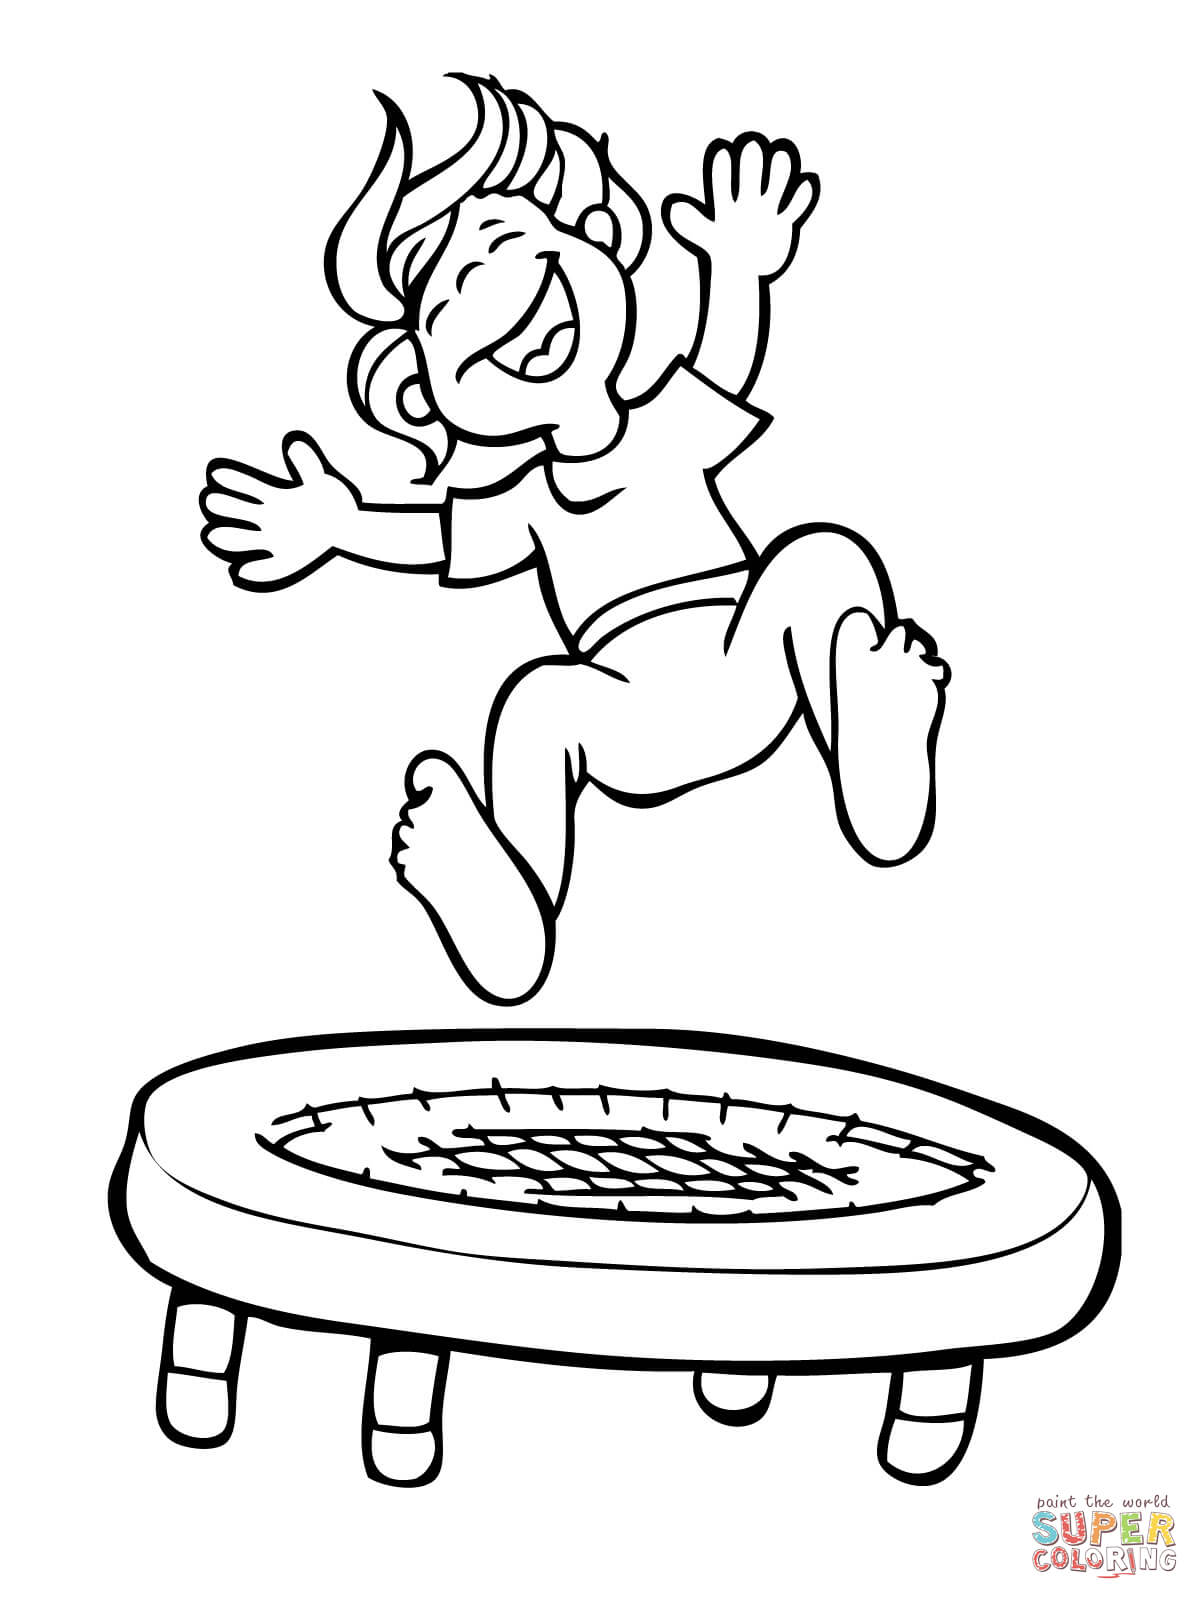 Trampoline Clipart Black And White Clipground